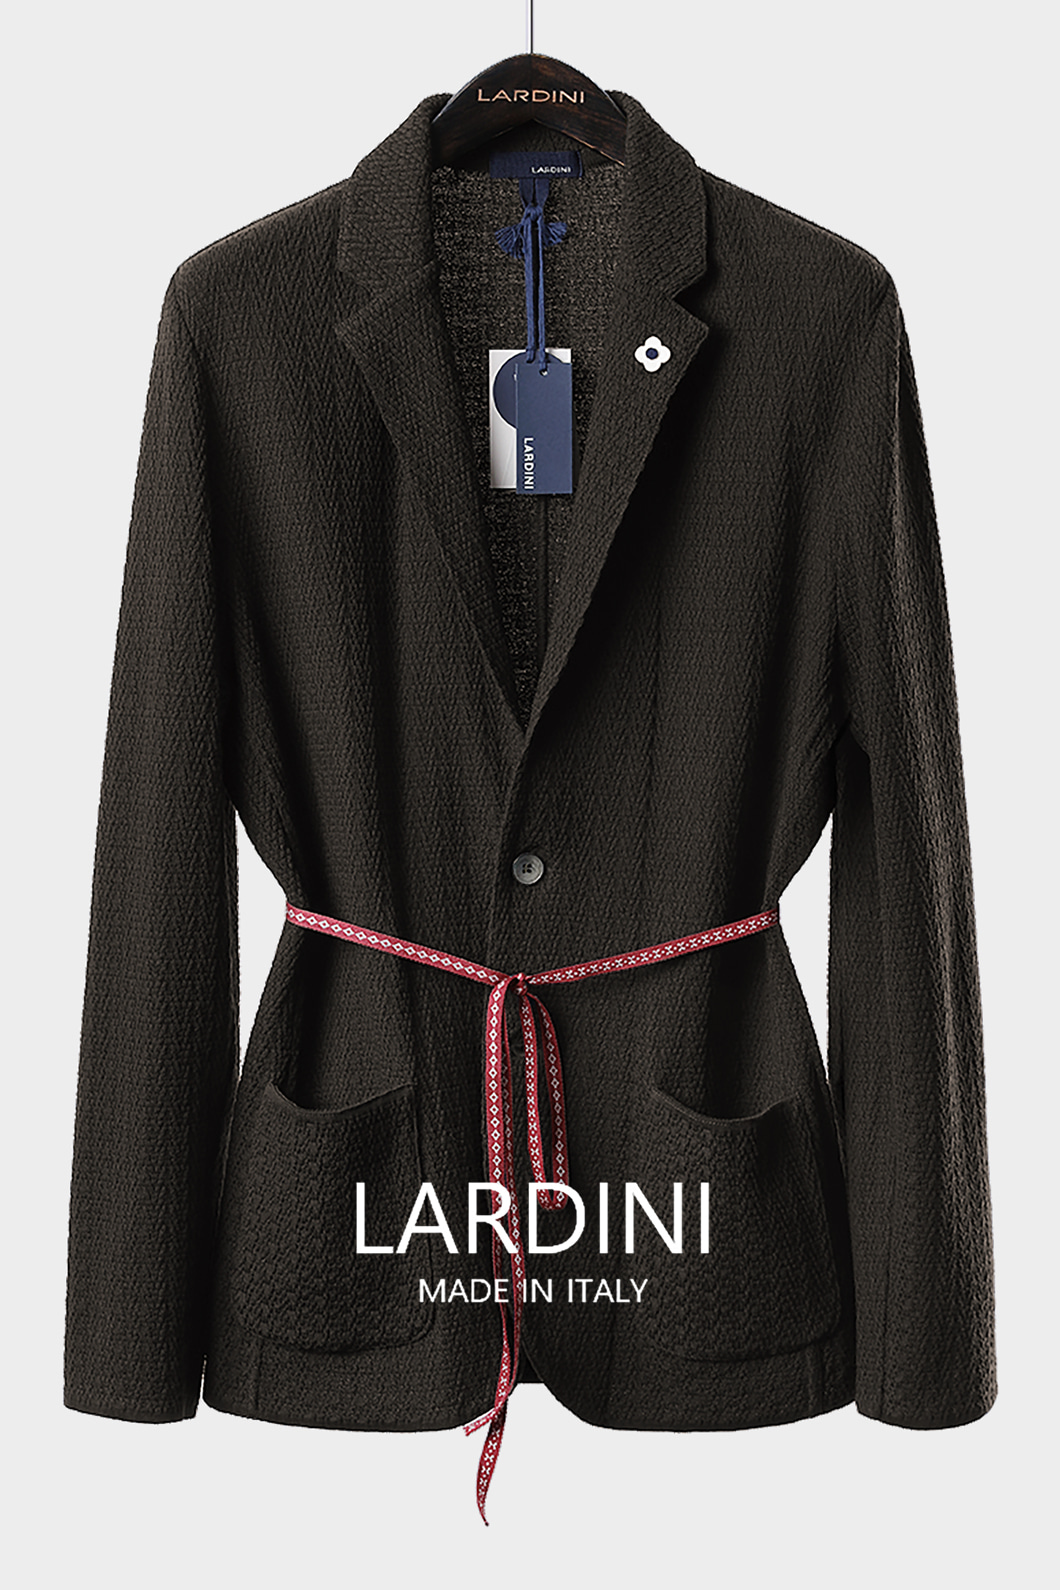 LARDINI SINGLE DIAMOND KNIT JACKET-BROWN